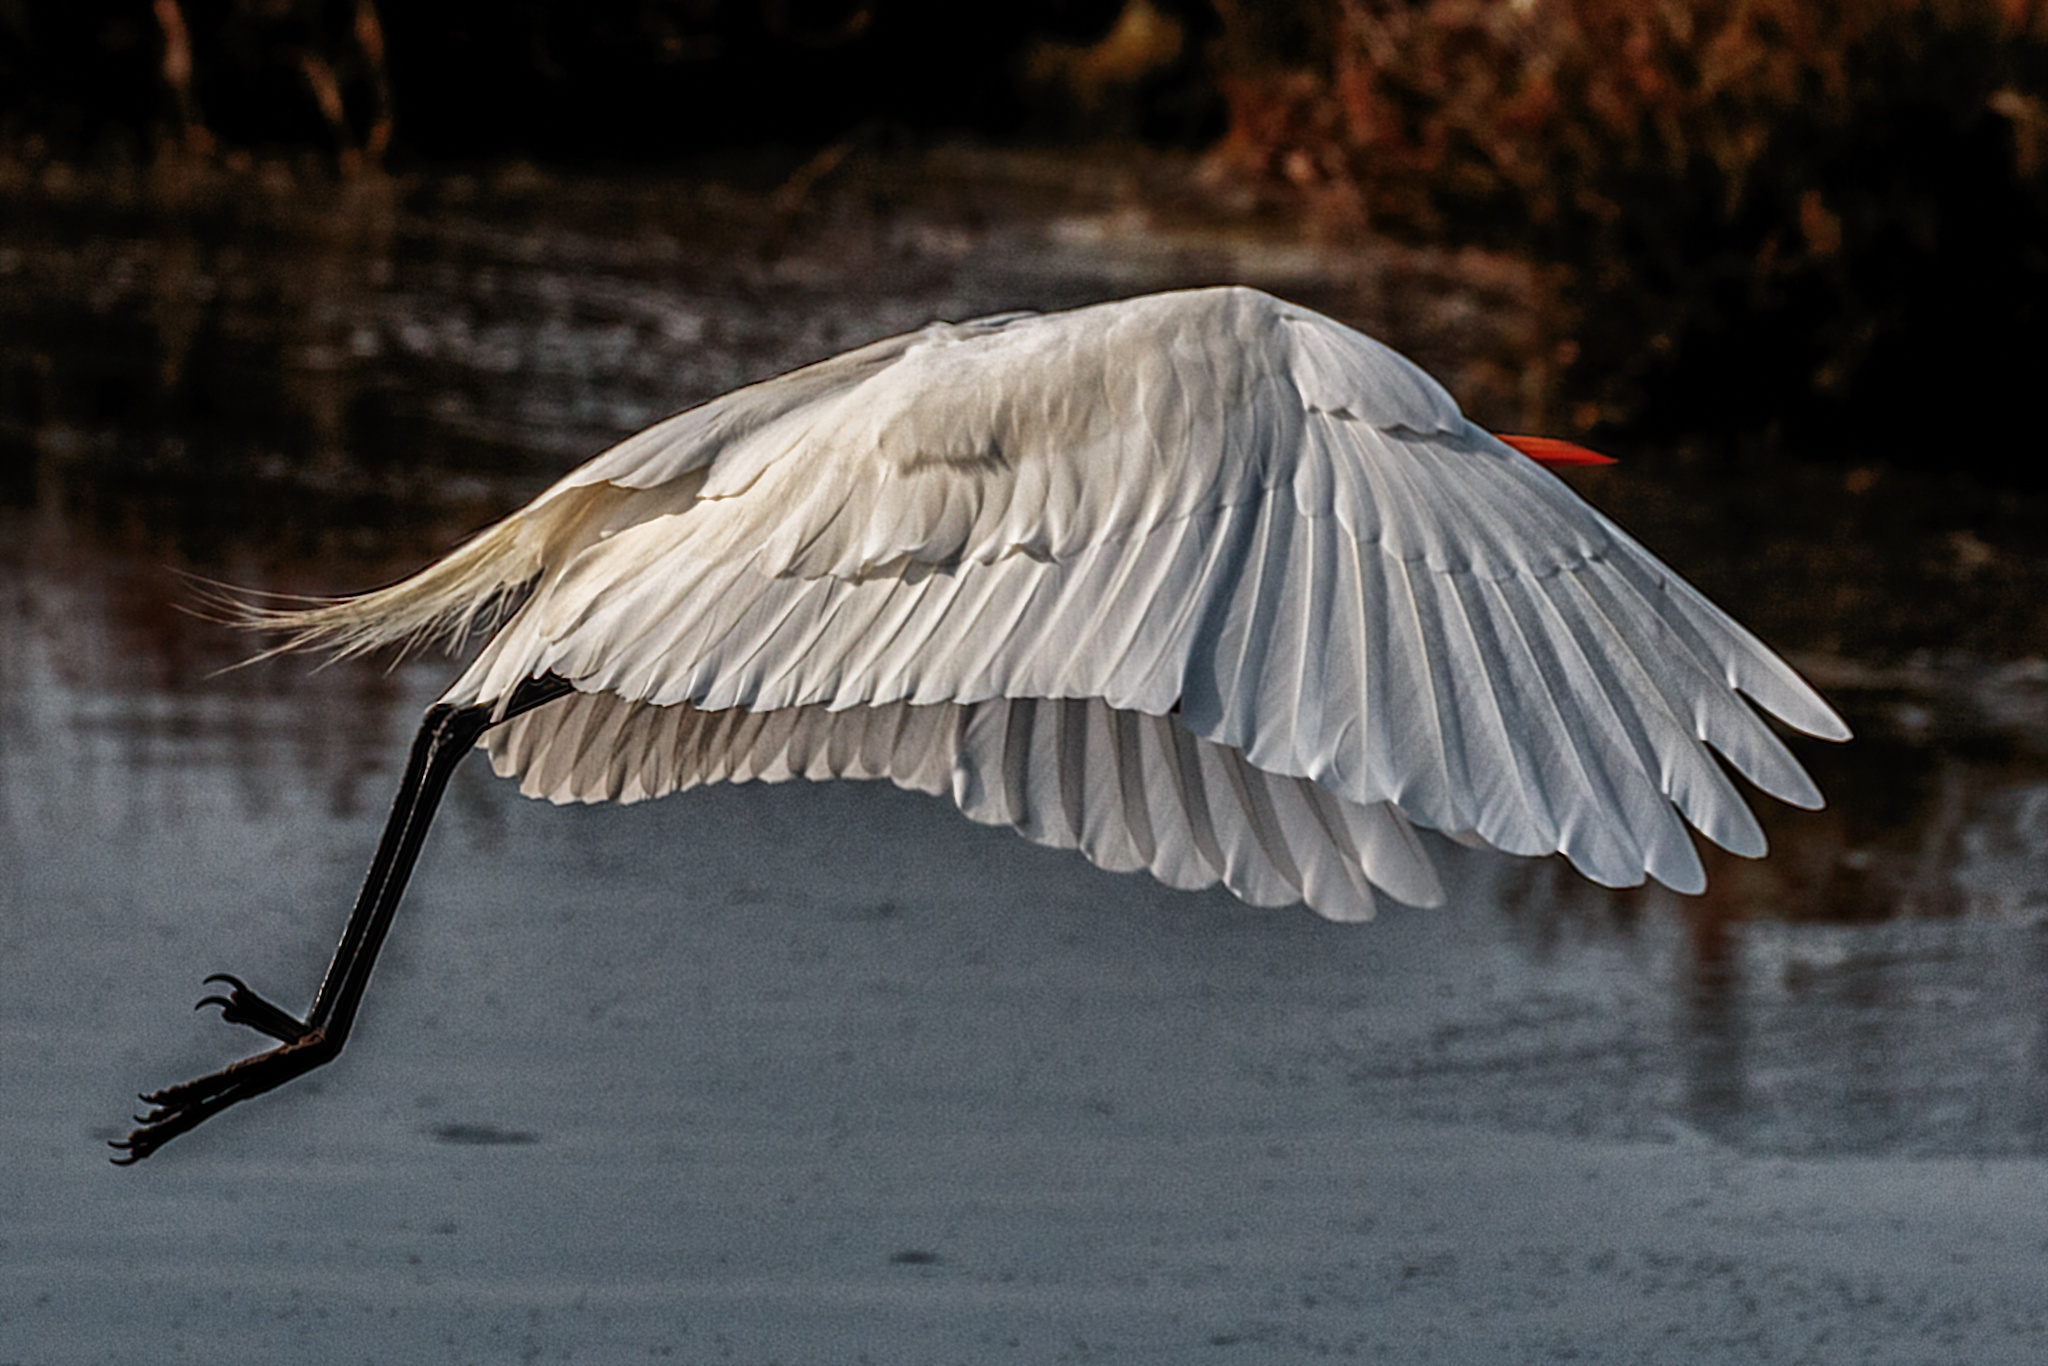 Flap of the wings (great egret) by Boris Droutman